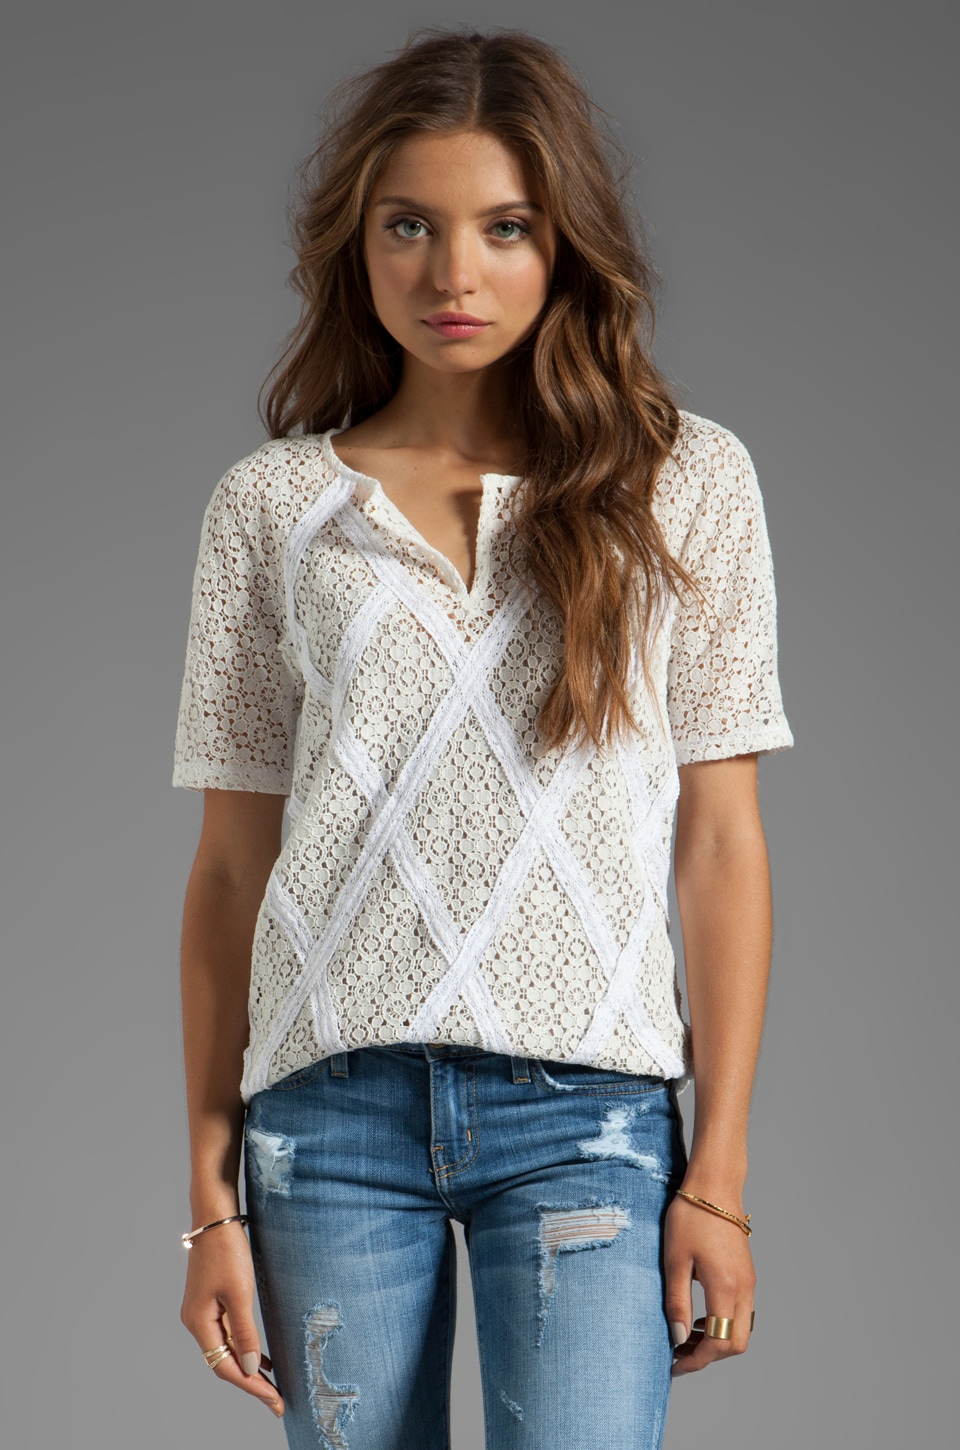 Marc by Marc Jacobs Collage Lace Short Sleeve Top in Snow White